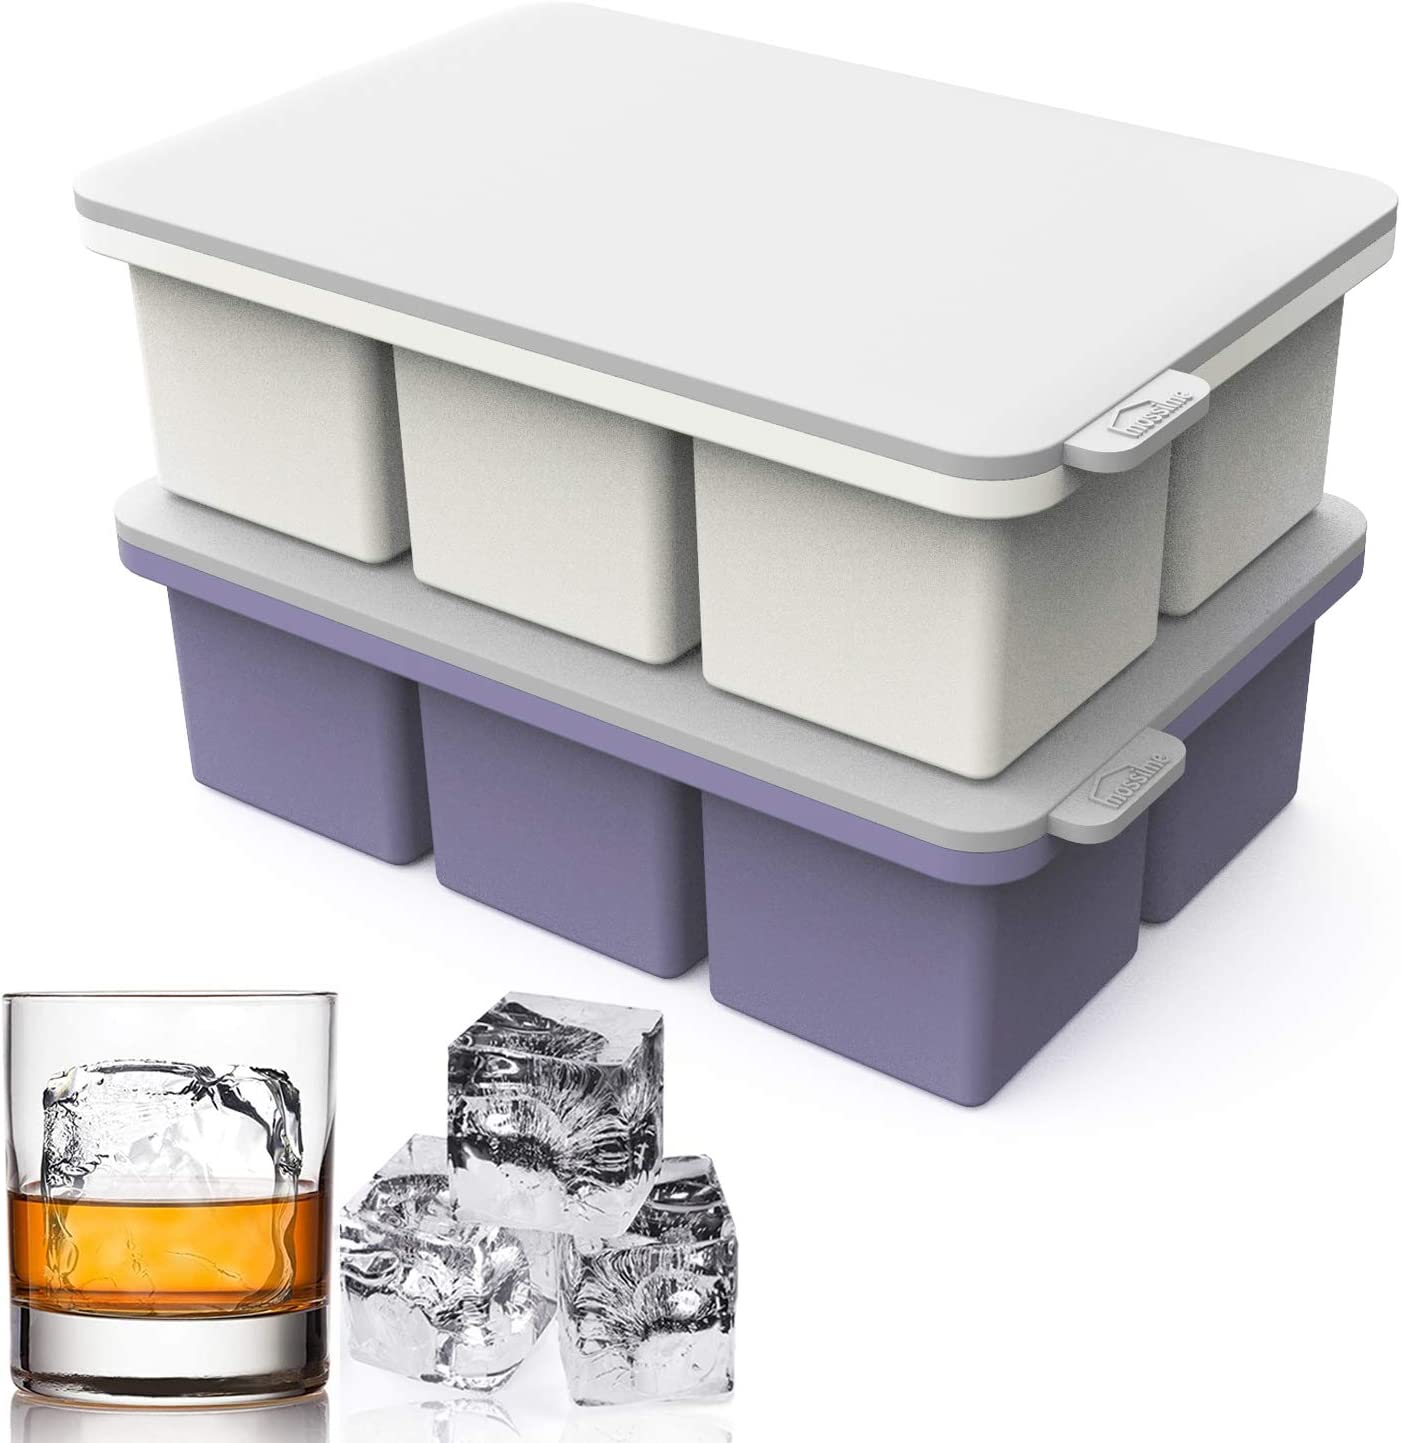 Large Ice Cube Tray Silicone with Lid,2pack Ice Tray Mold,12 Cavity Giant Ice Cube Maker Keep Whiskey Chilled, Easy Release Reusable Mold Maker for Chilling Wine Cocktail Beverage Juice Soup Baby Food